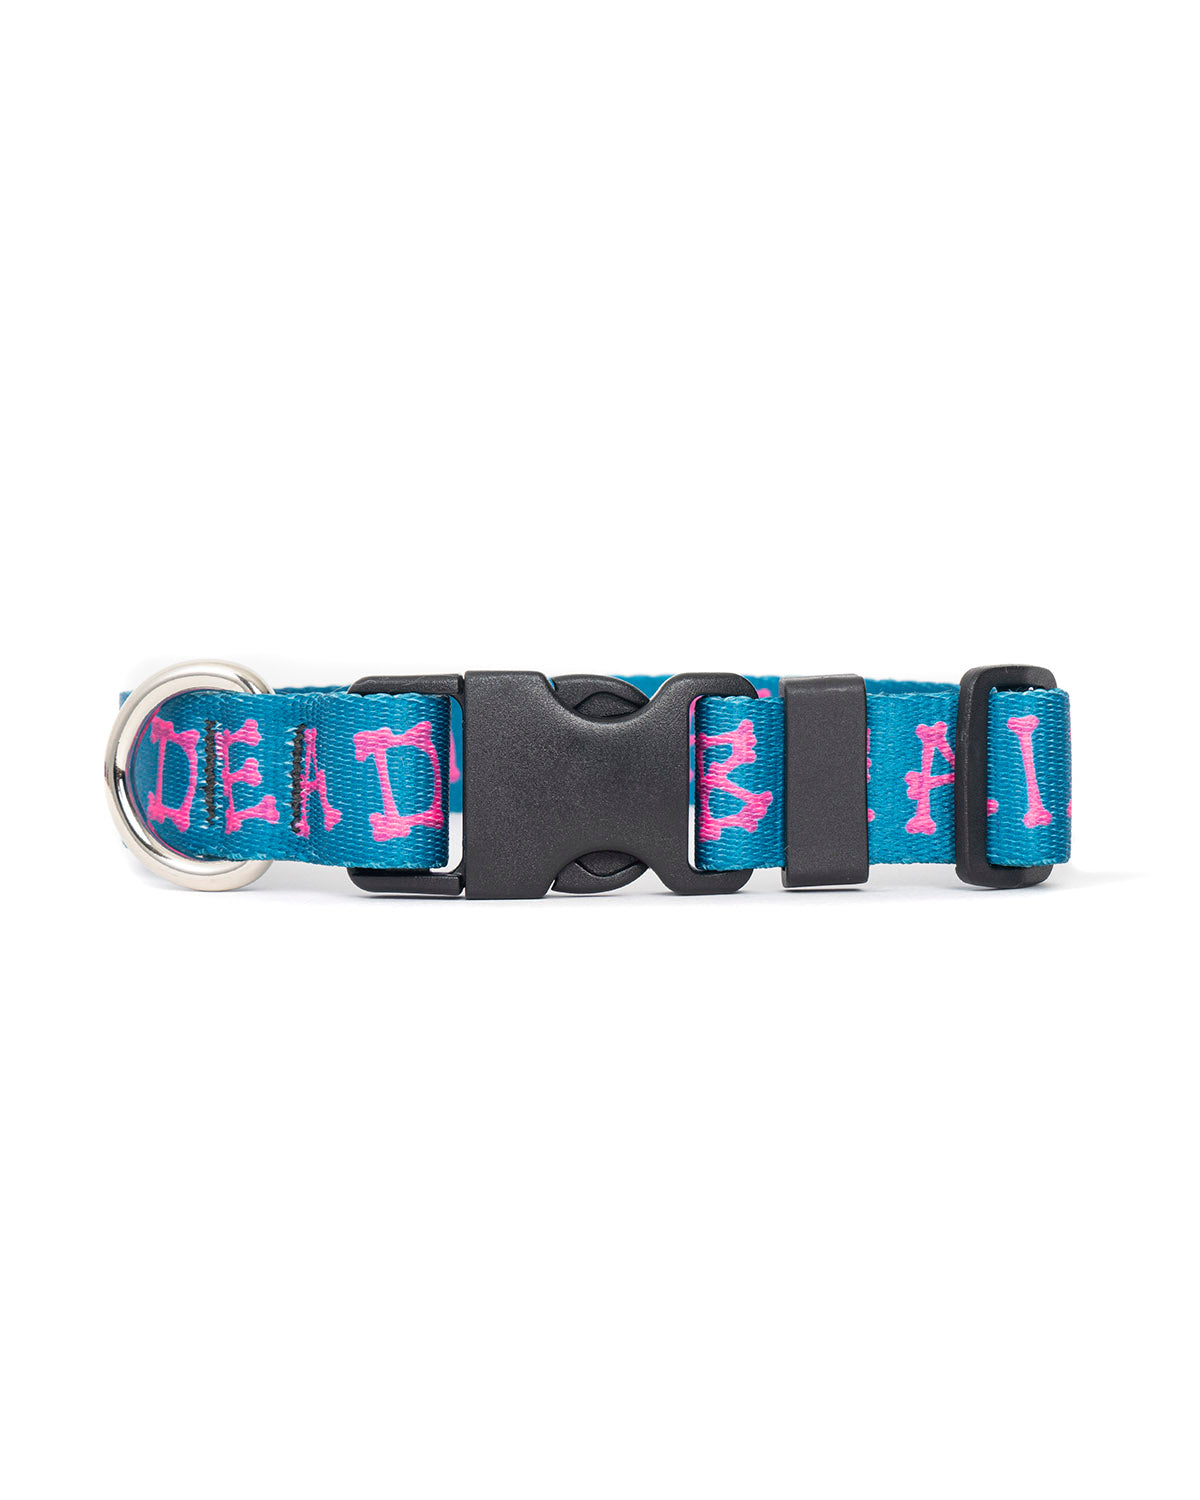 Boneman Dog Collar - Teal